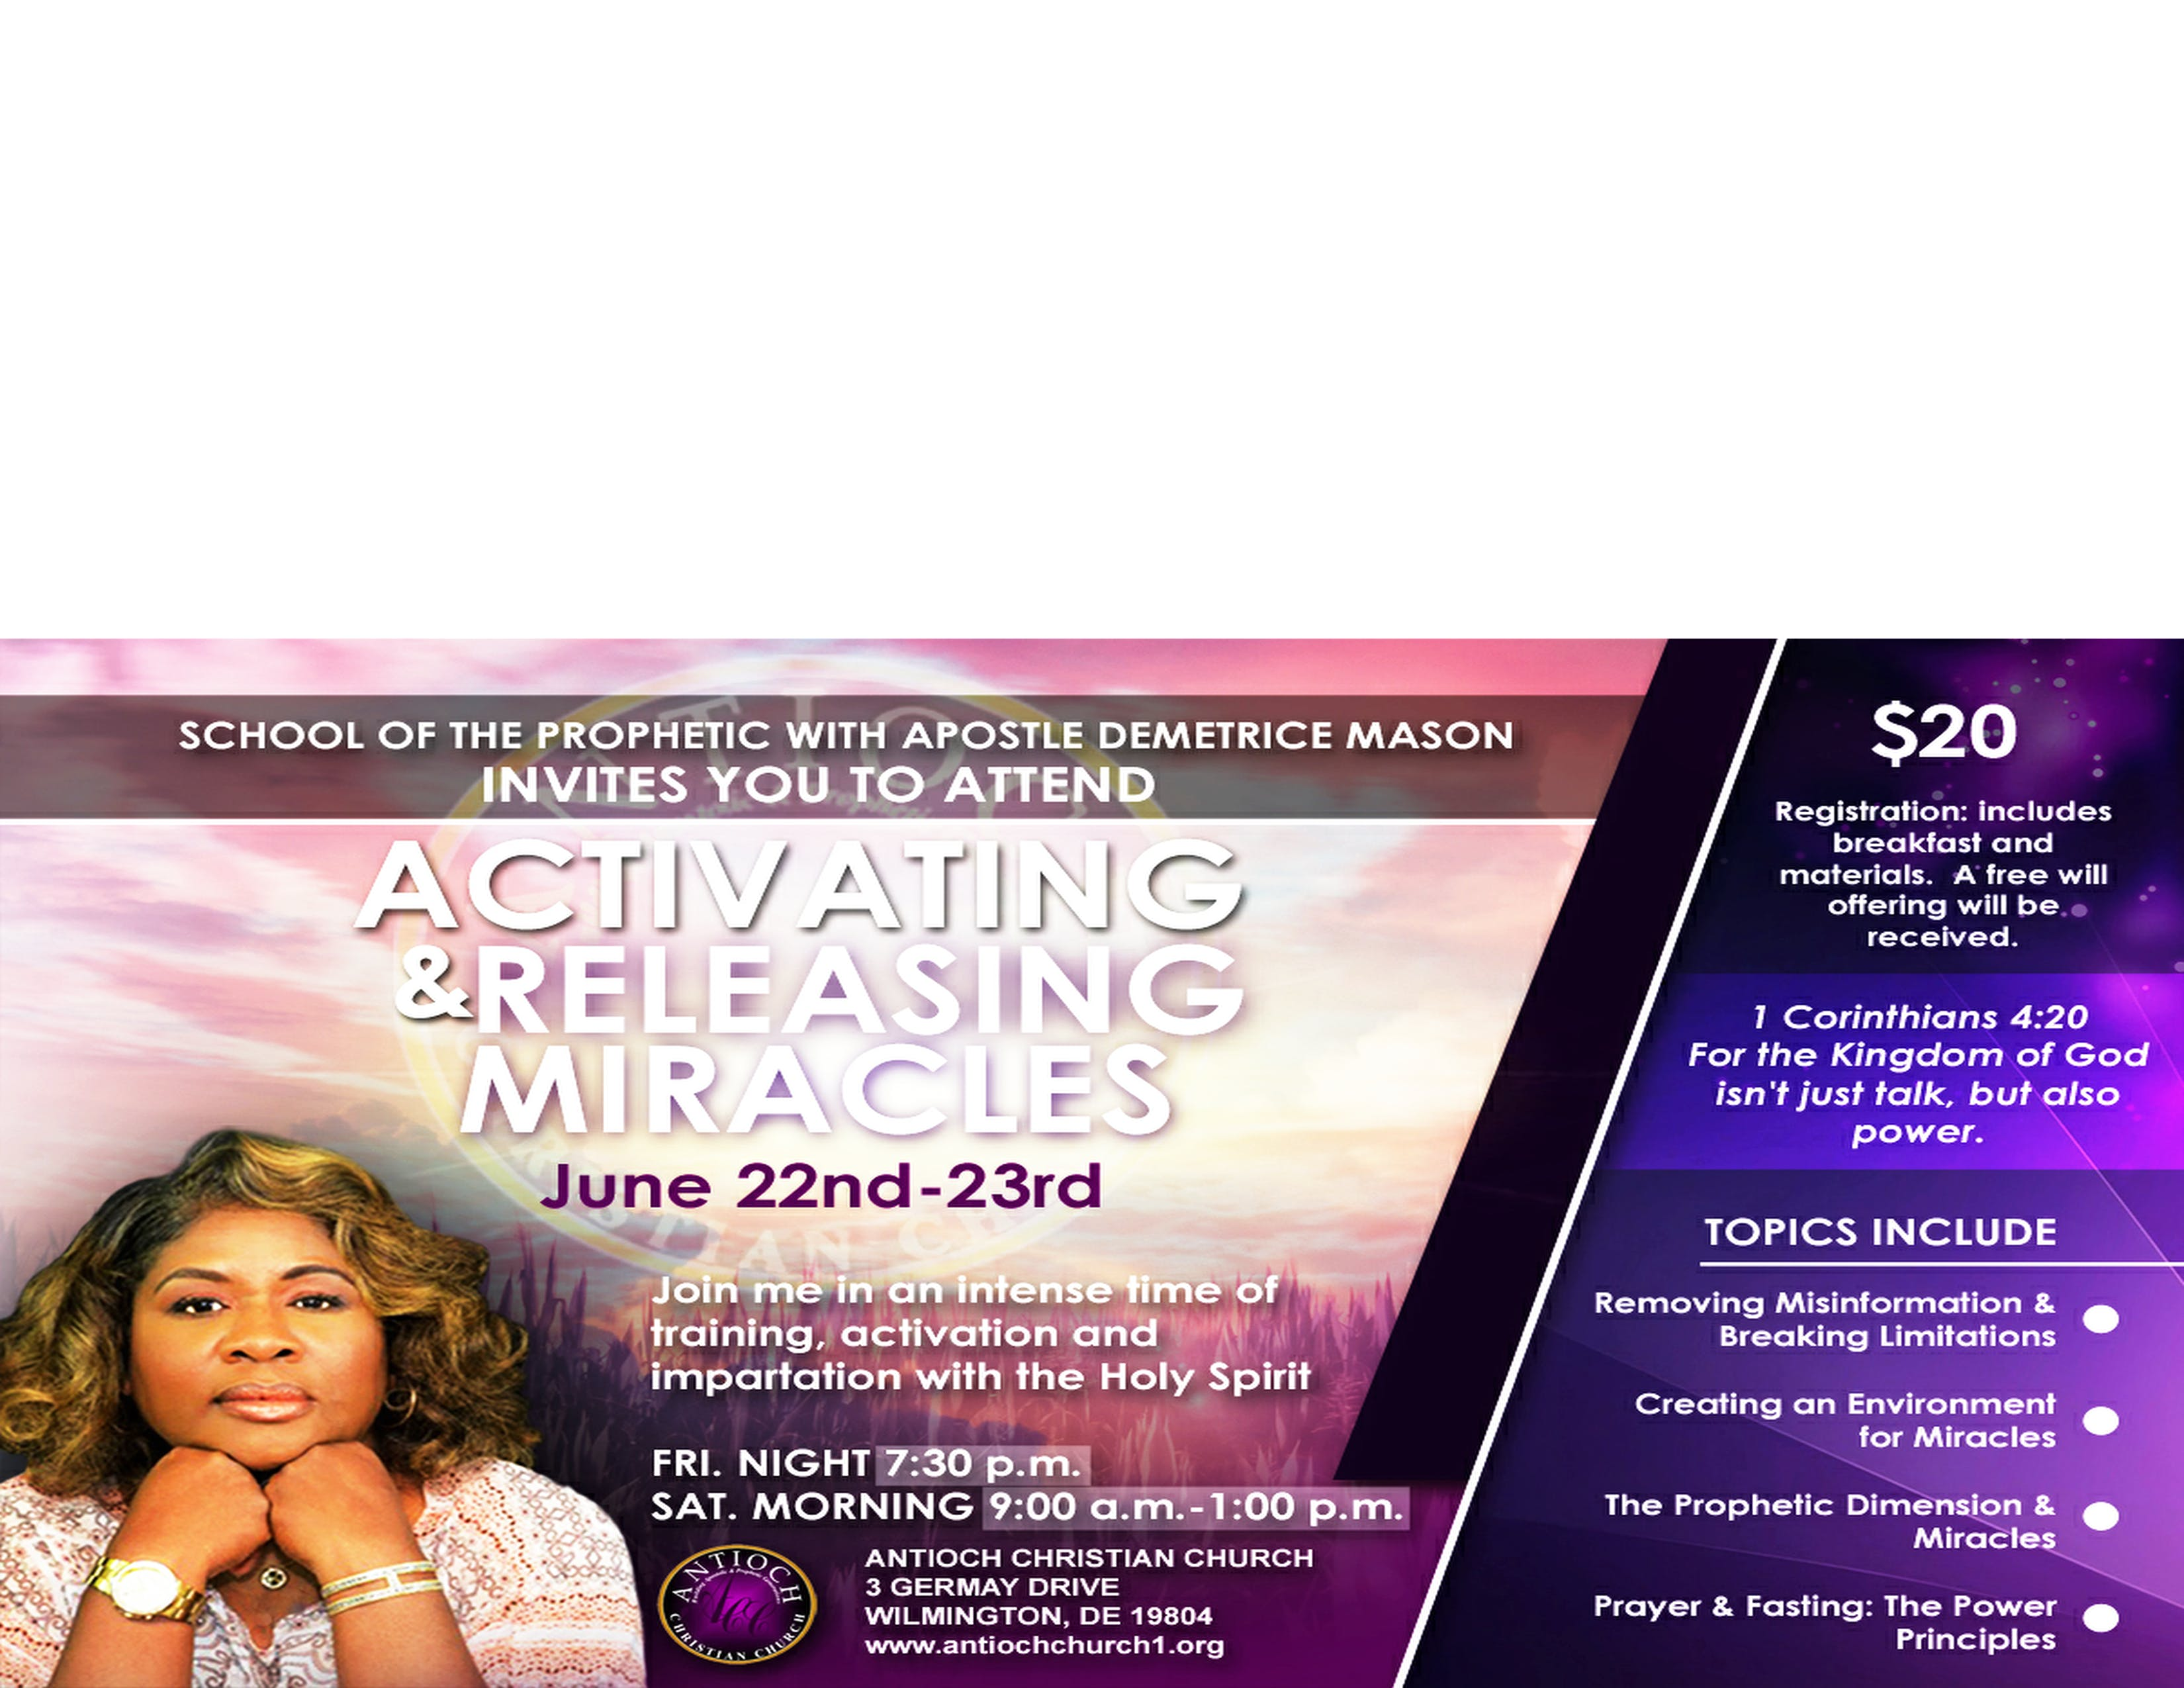 School of the Prophetic with Apostle Demetrice Mason at